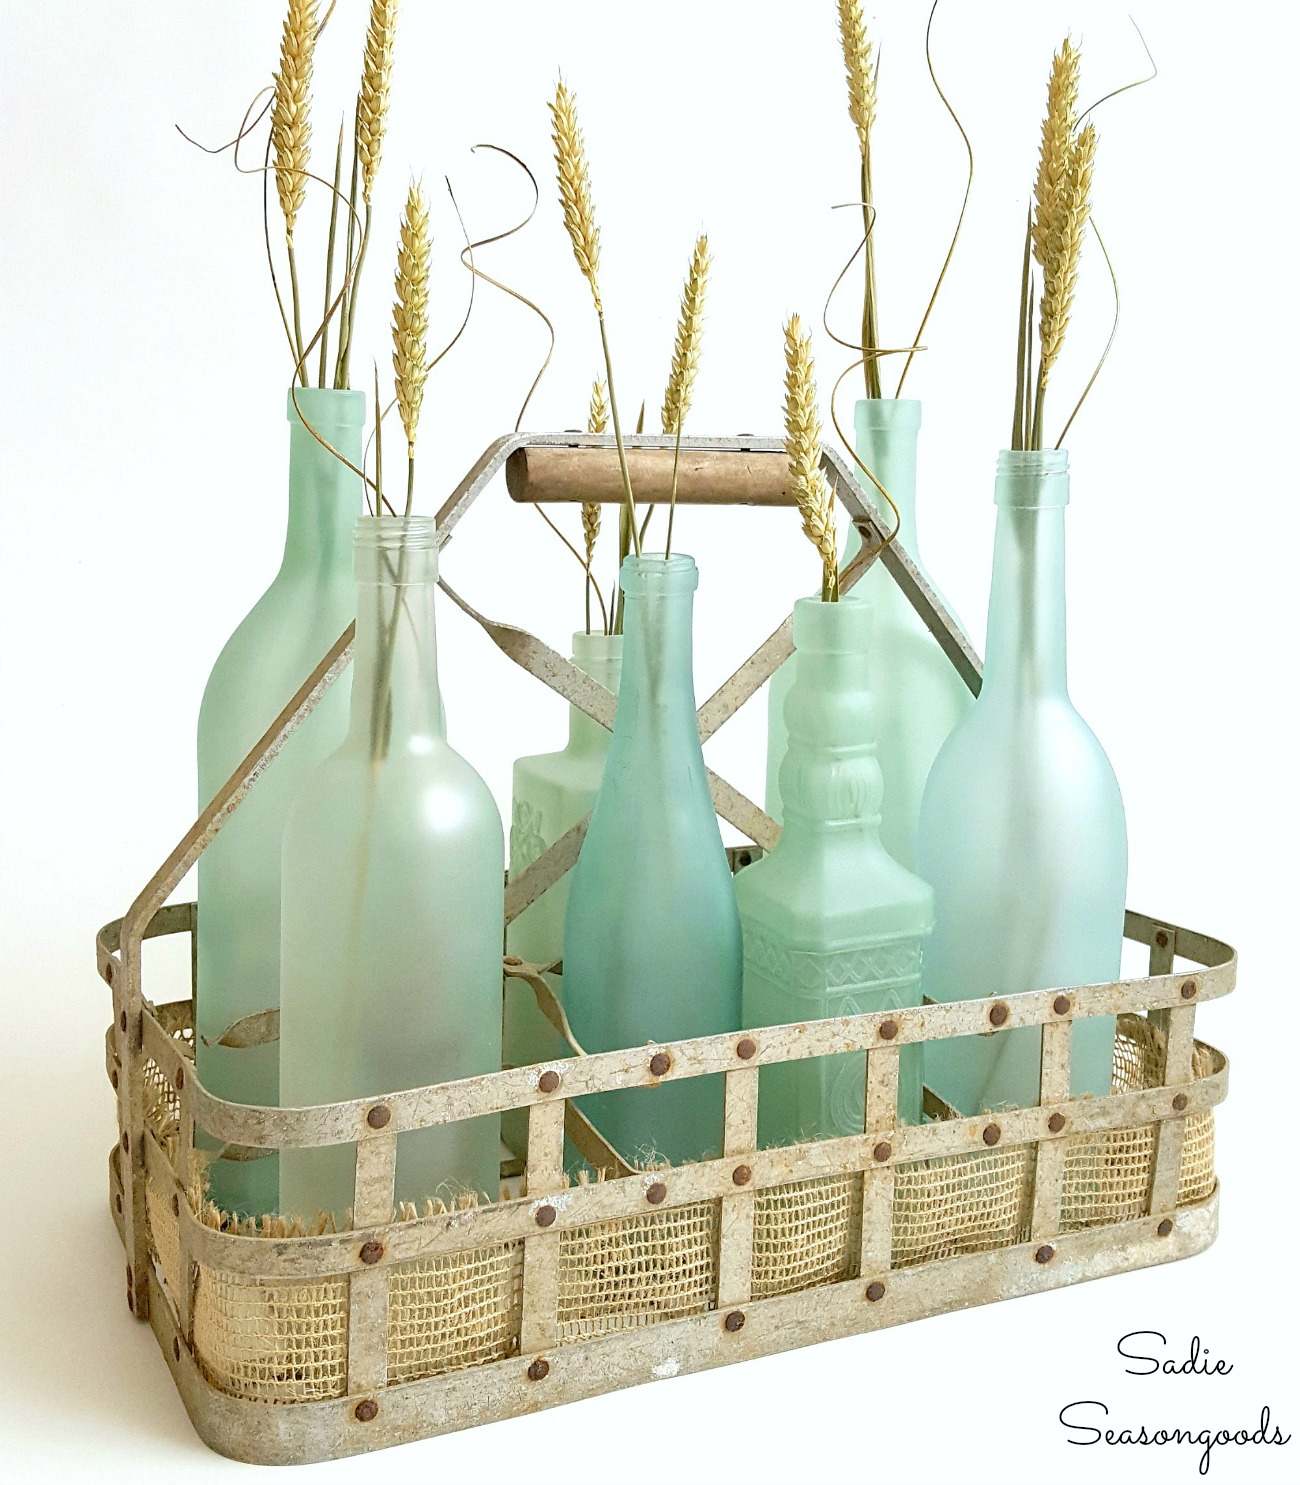 Wine Bottle Crafts – Beach Glass or Sea Glass Bottles for Coastal Decor